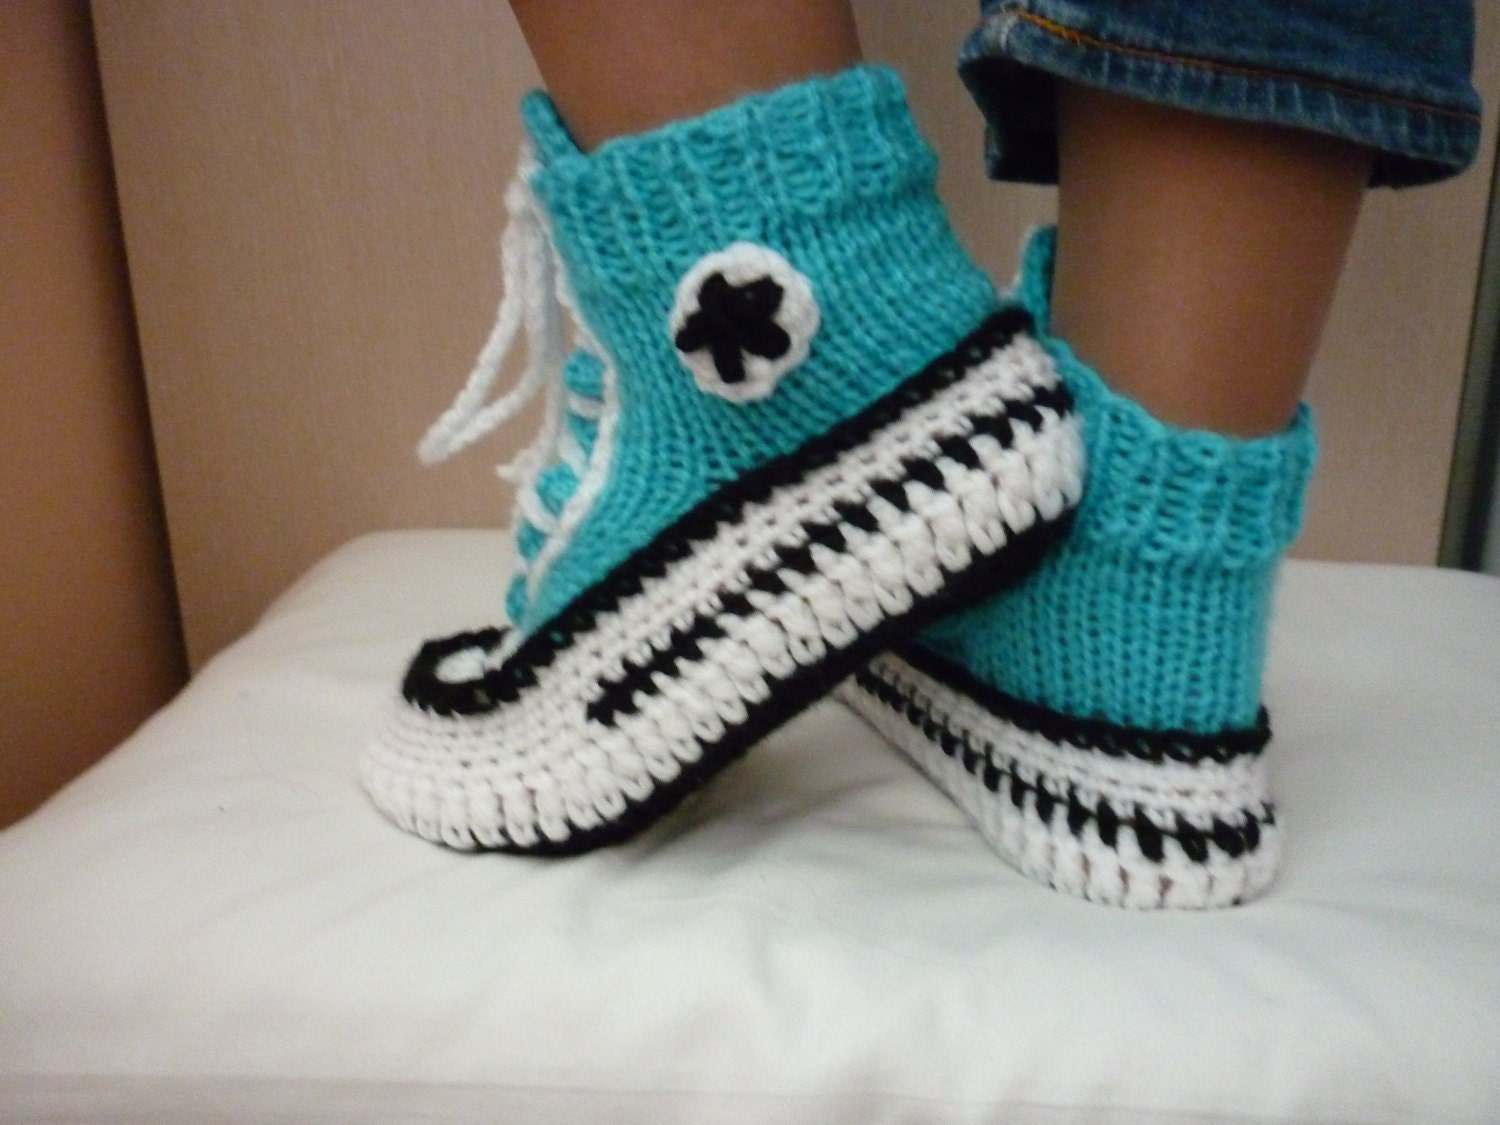 Crochet pattern converse slippers knitted pattern slippers zoom bankloansurffo Choice Image